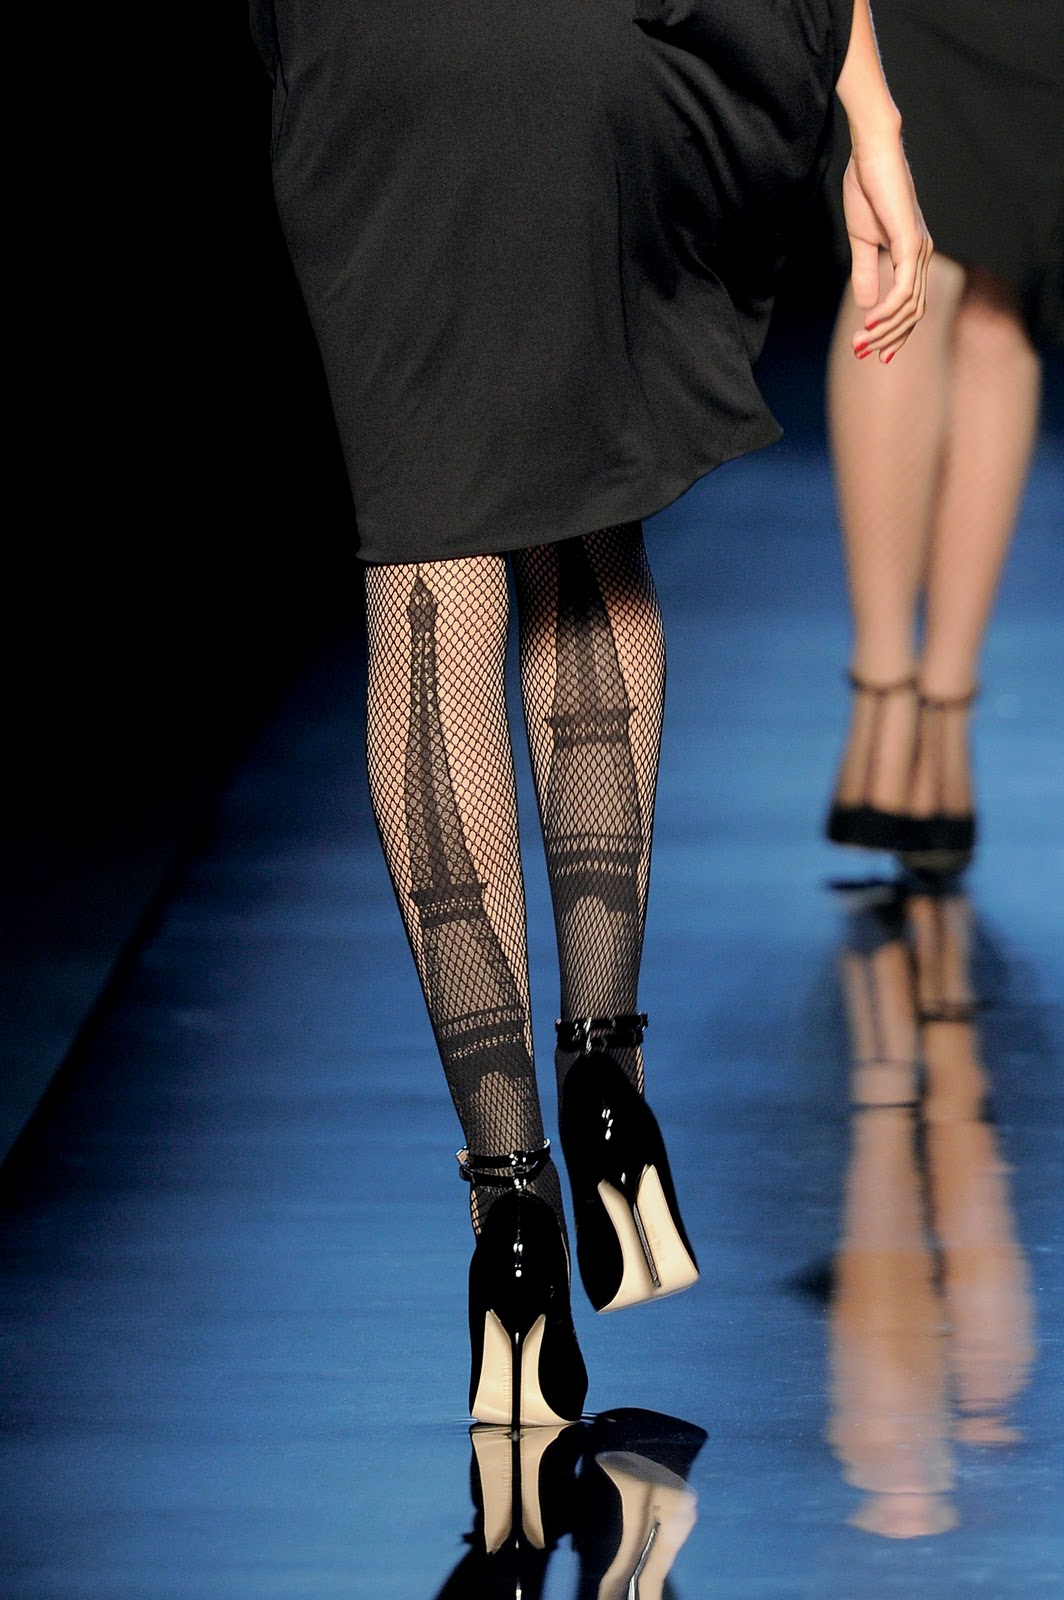 http://1.bp.blogspot.com/-rPD9dTxjhGU/TrgAj4FqnDI/AAAAAAAAIE8/LER3A2kMKMo/s1600/Fishnet+tights_Parisiennes+collection.jpg